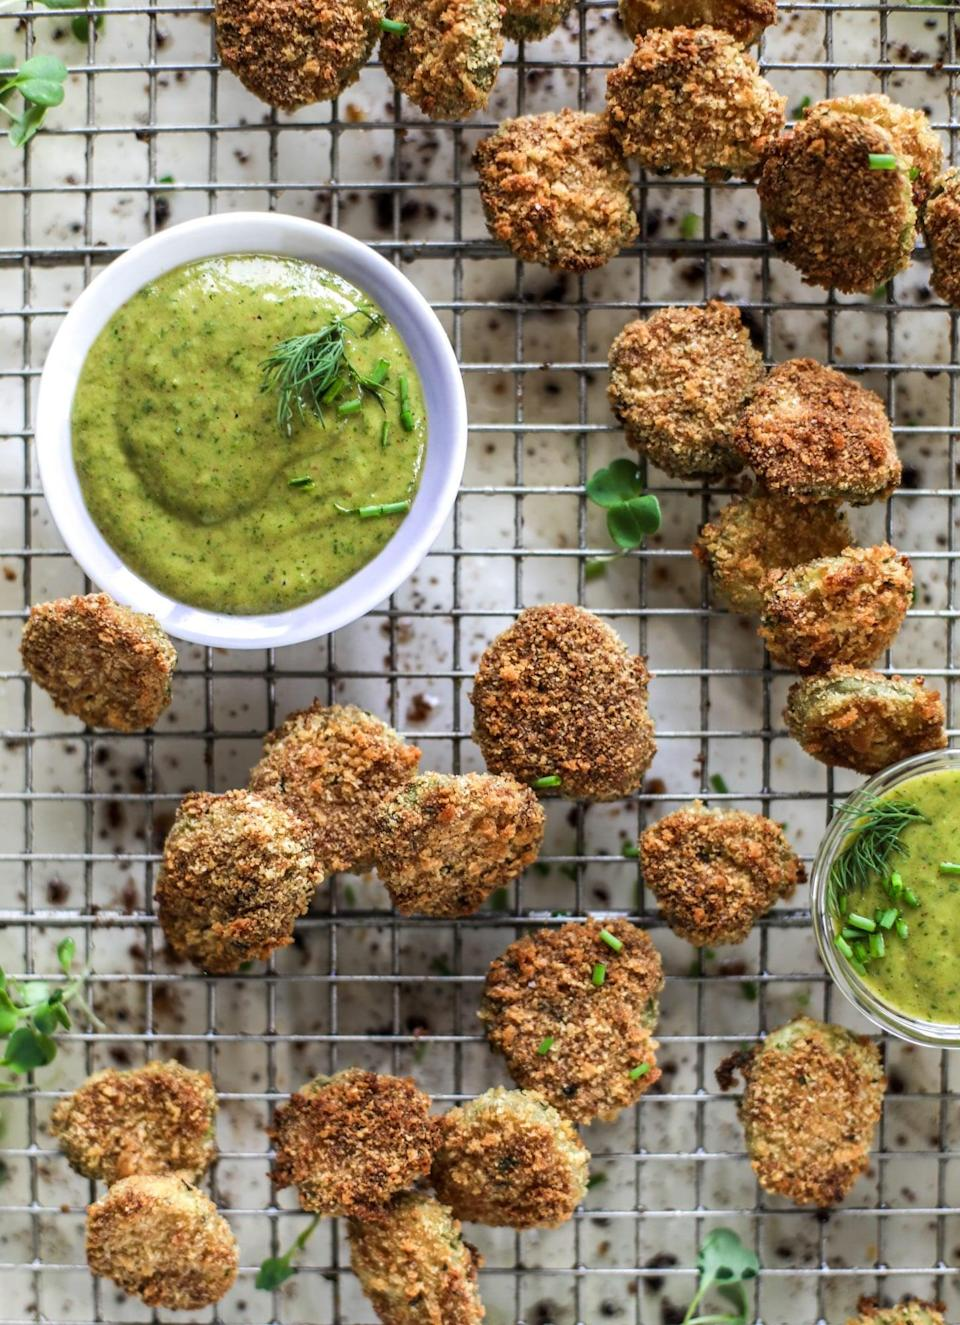 """<p>Pickle fanatics will flip over just how tasty these crispy bites are. They're easy to make and even easier to eat, so stock up on the pickles, please! This recipe makes enough to feed four people, and since these are <em>so</em> good, two people could easy nosh on all of 'em.</p> <p><strong>Get the recipe:</strong> <a href=""""https://www.howsweeteats.com/2019/05/crispy-baked-pickles/"""" class=""""link rapid-noclick-resp"""" rel=""""nofollow noopener"""" target=""""_blank"""" data-ylk=""""slk:oven-fried pickles"""">oven-fried pickles</a></p>"""